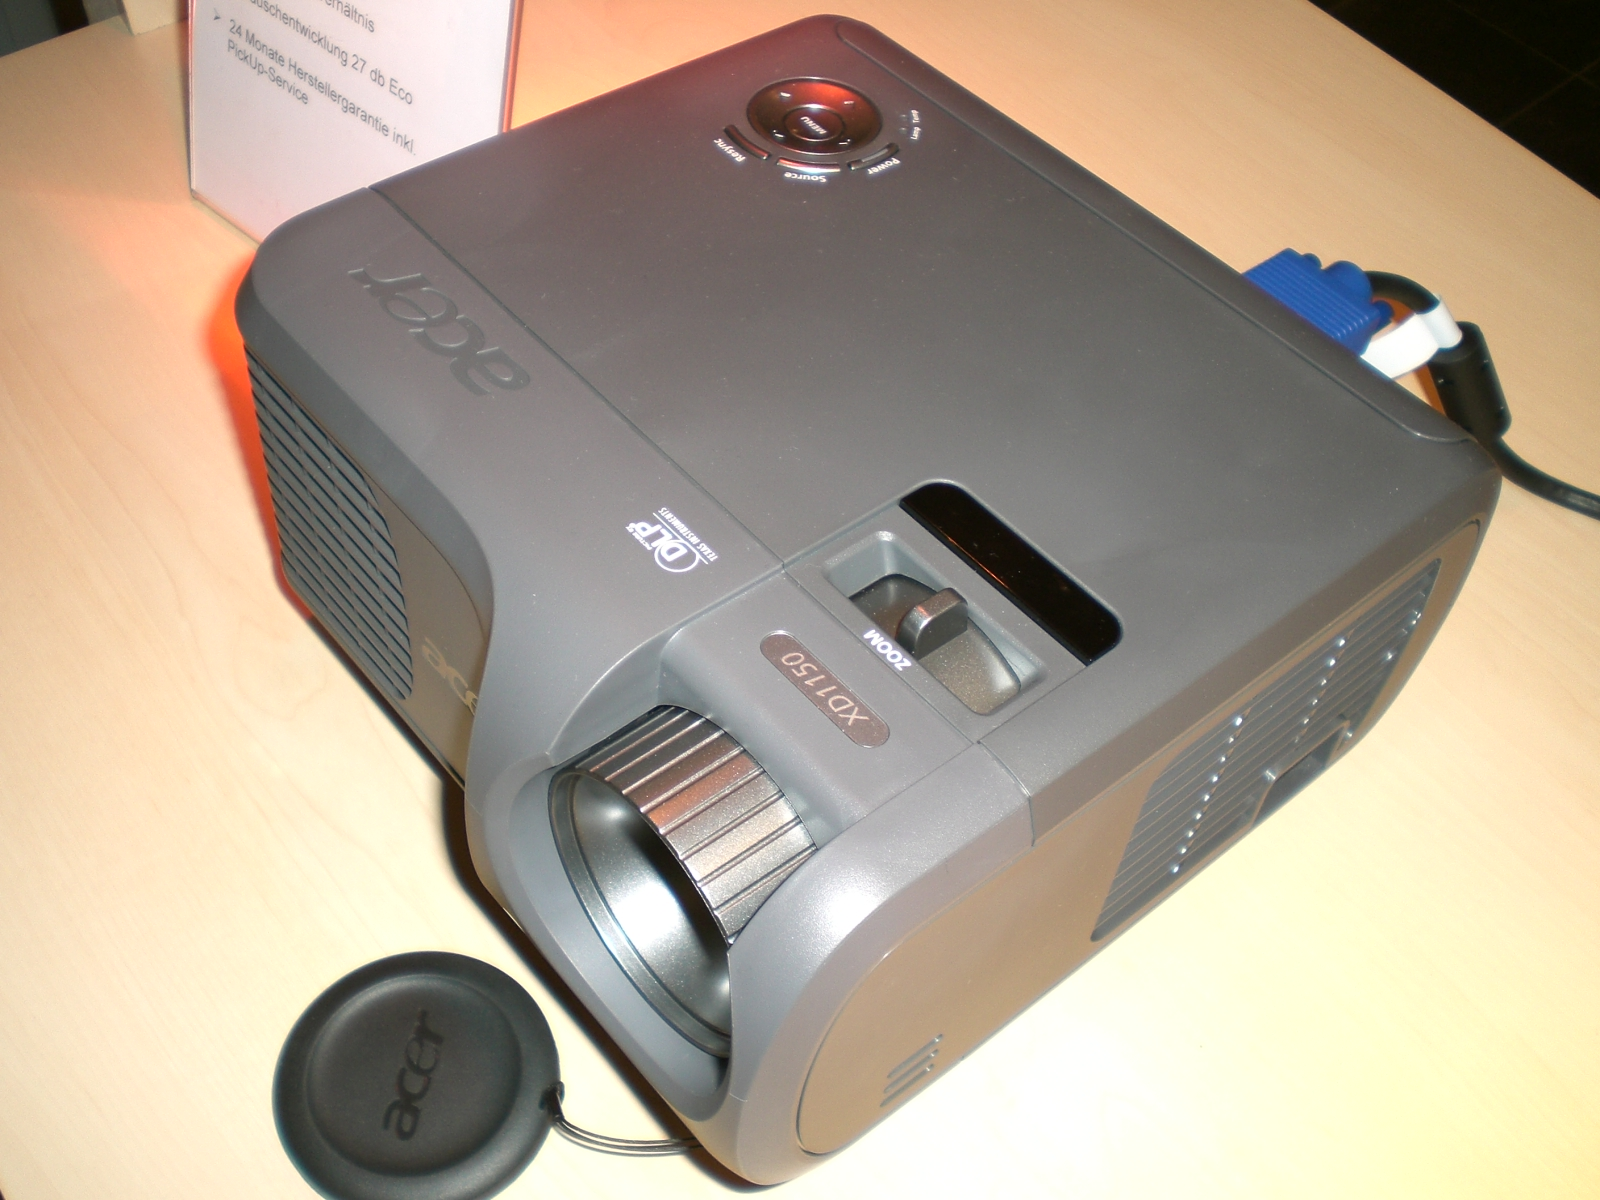 Driver: Acer XD1150